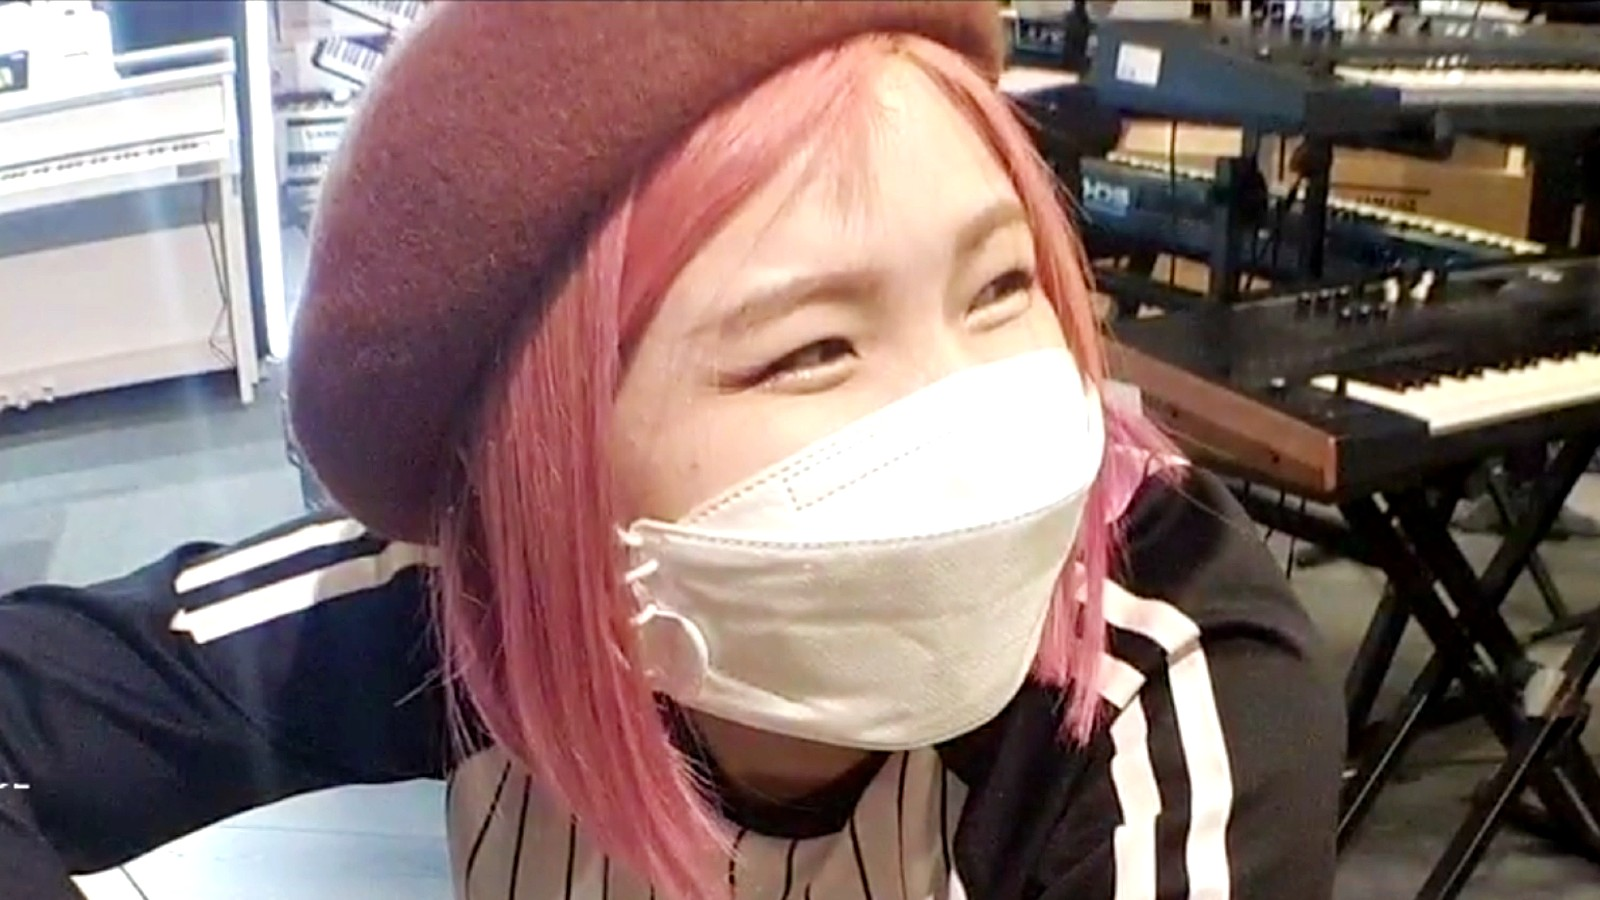 Twitch streamer HAchubby laughs about song interrupting her piano playing